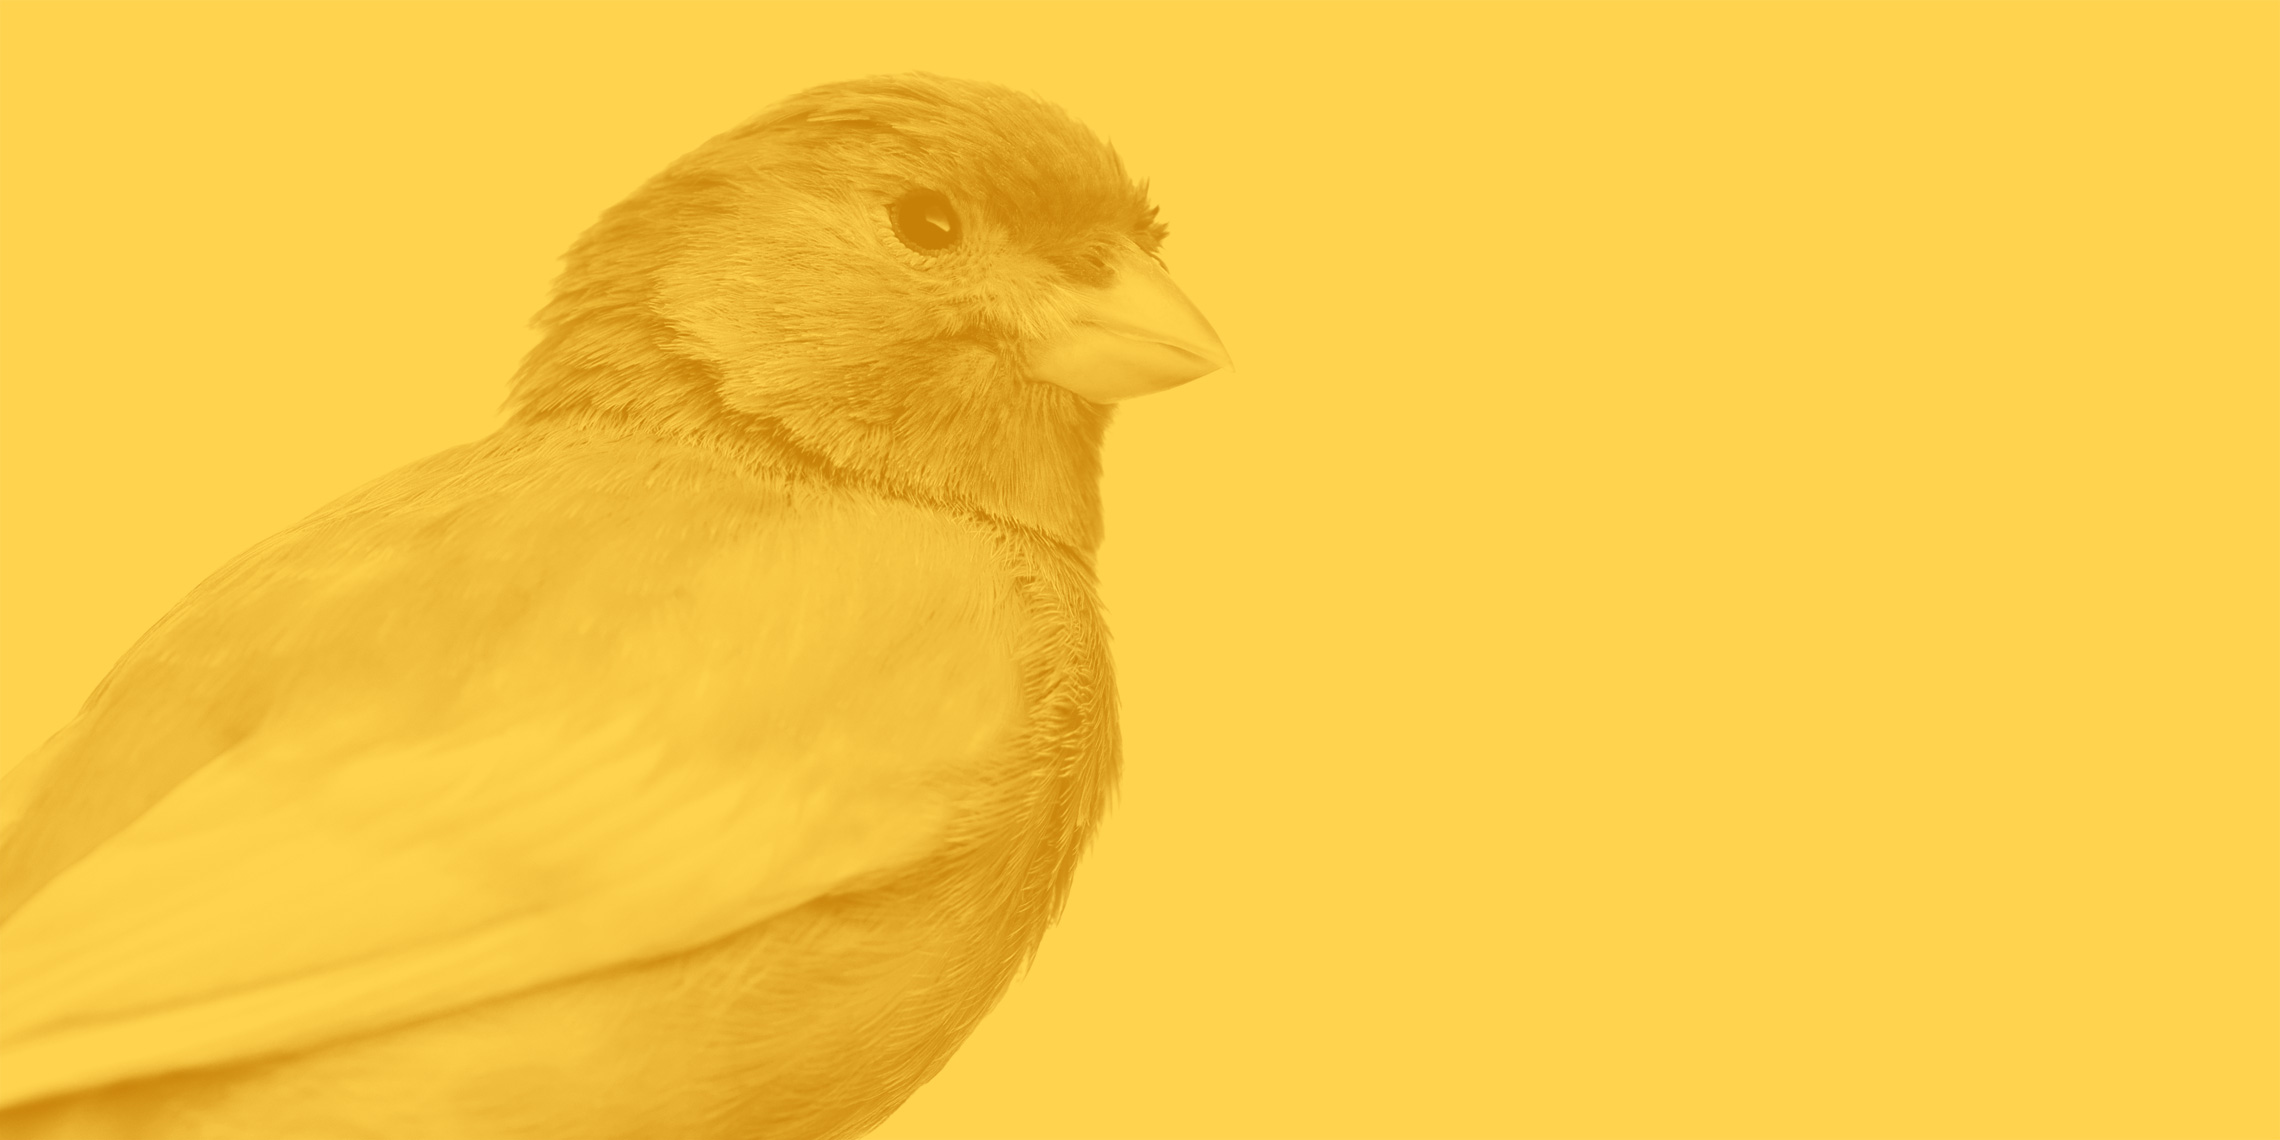 Part 3 - Continuous Deployment Strategies: Implementation Techniques for Canary Releases